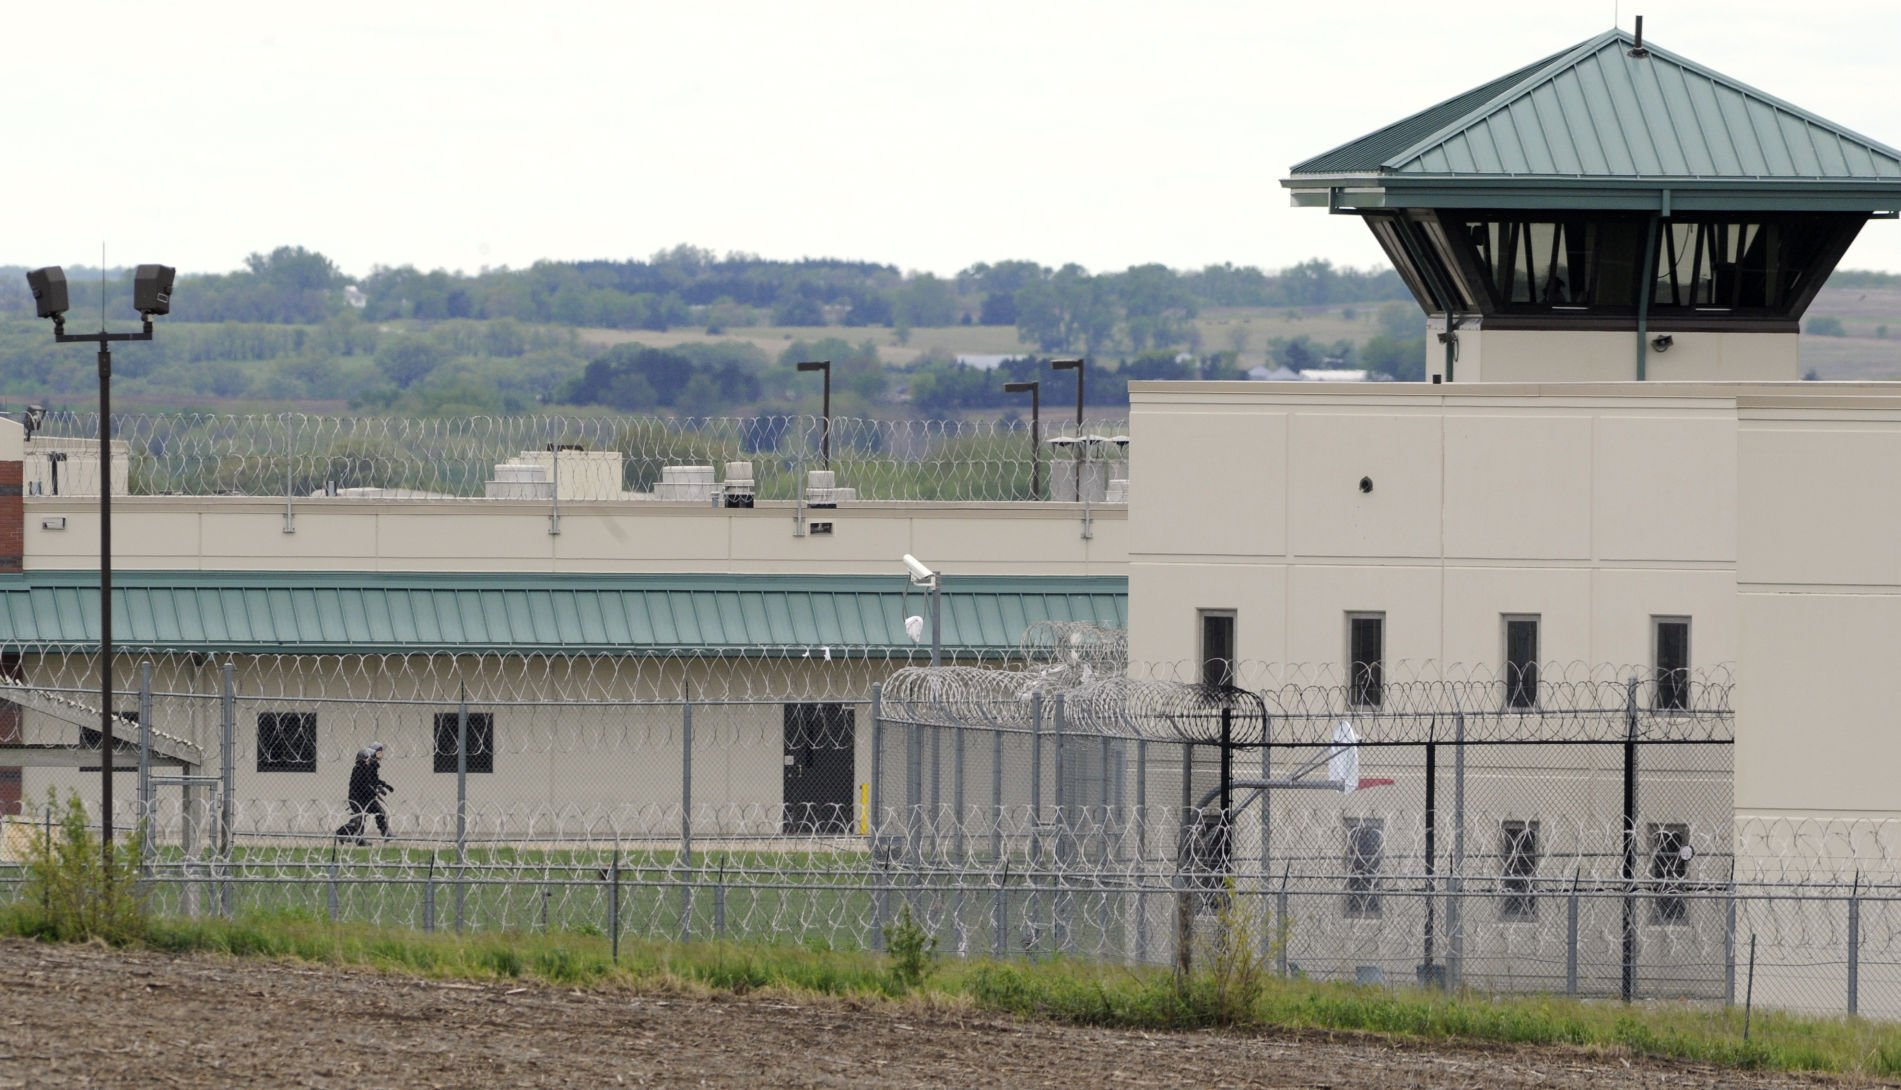 United States civil rights group sues Nebraska prisons for overcrowding